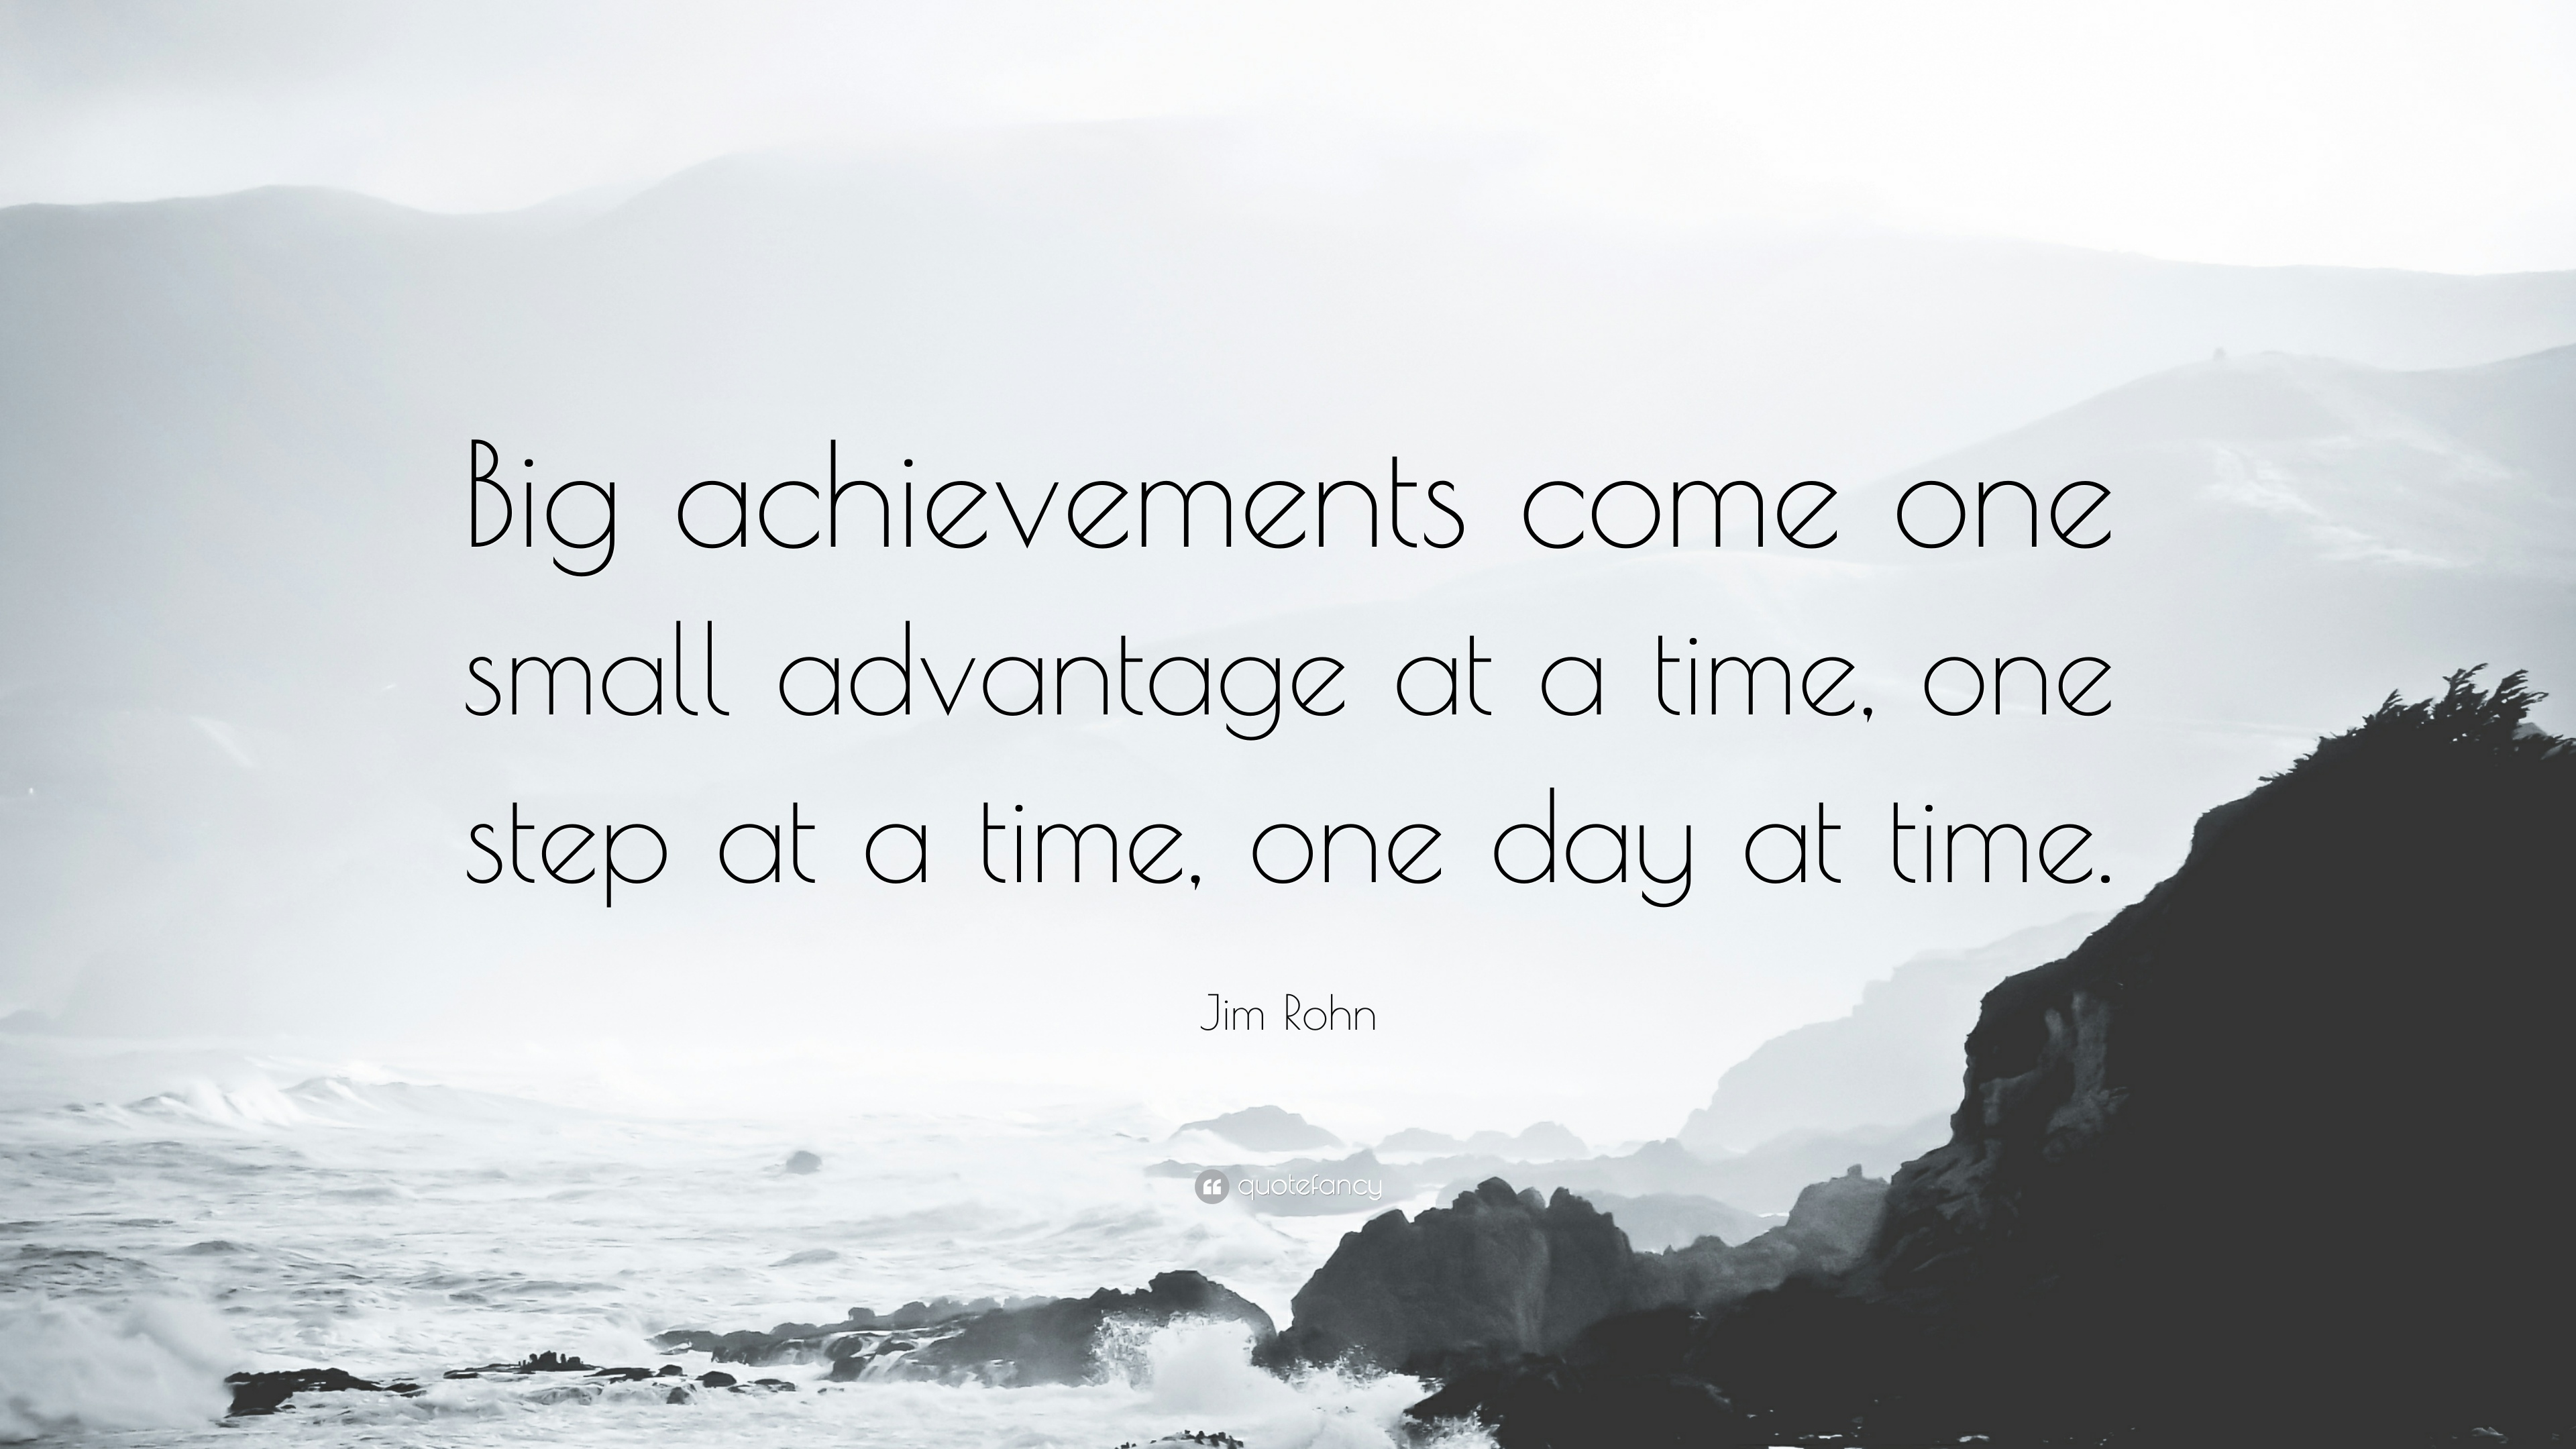 Achievement Quotes (40 wallpapers) - Quotefancy